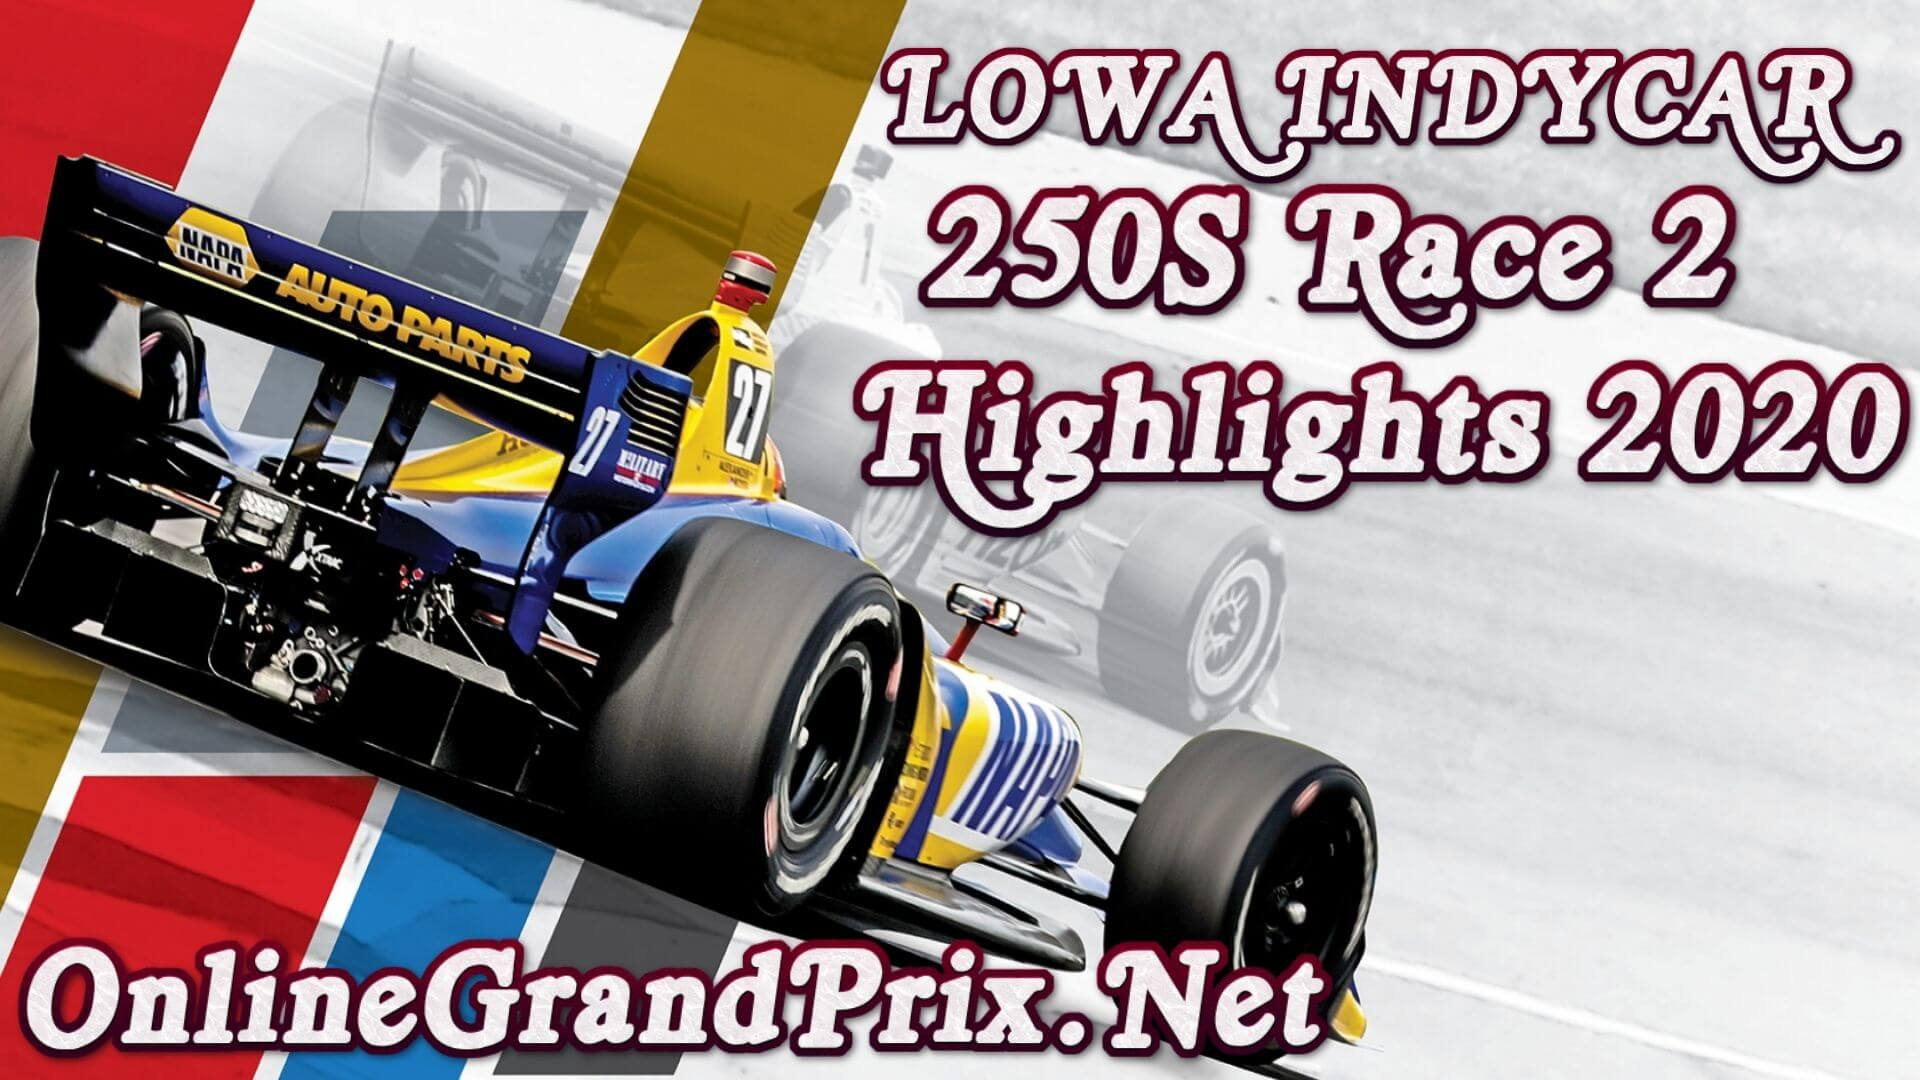 lowa Indycar 250S Race 2 Highlights INDYCAR 2020